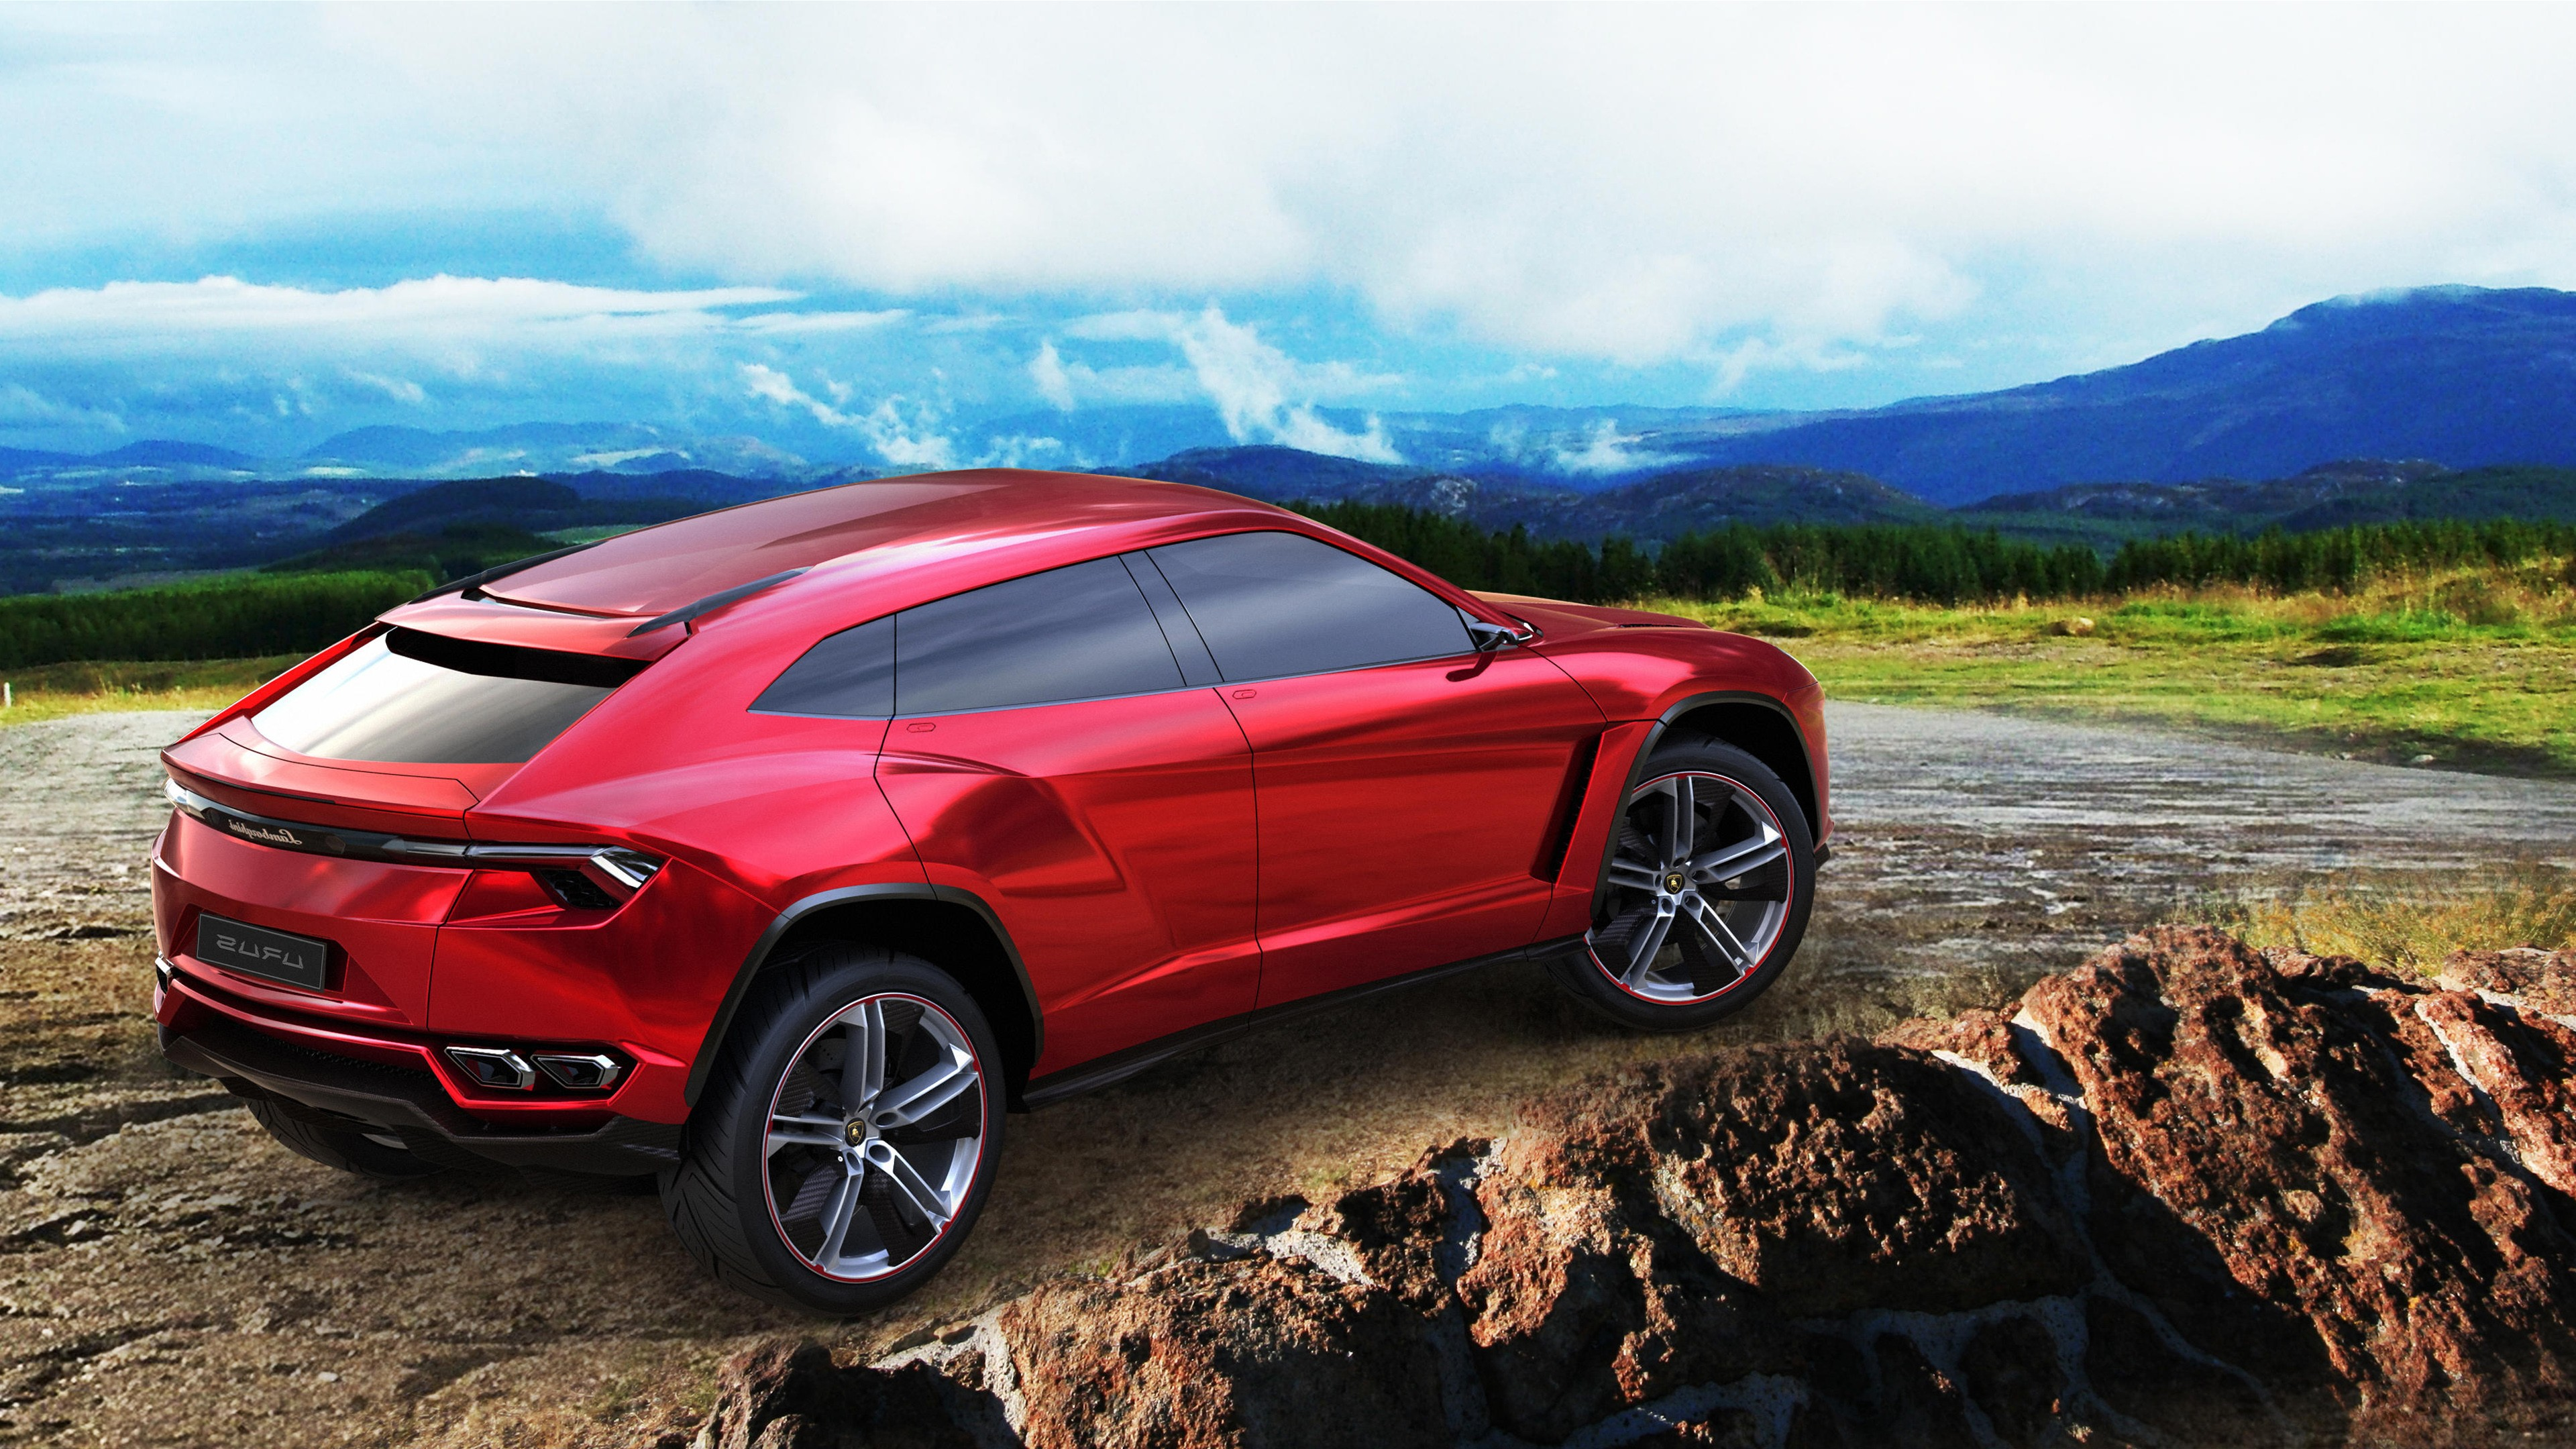 lamborghini urus concept hd cars 4k wallpapers images backgrounds photos and pictures. Black Bedroom Furniture Sets. Home Design Ideas